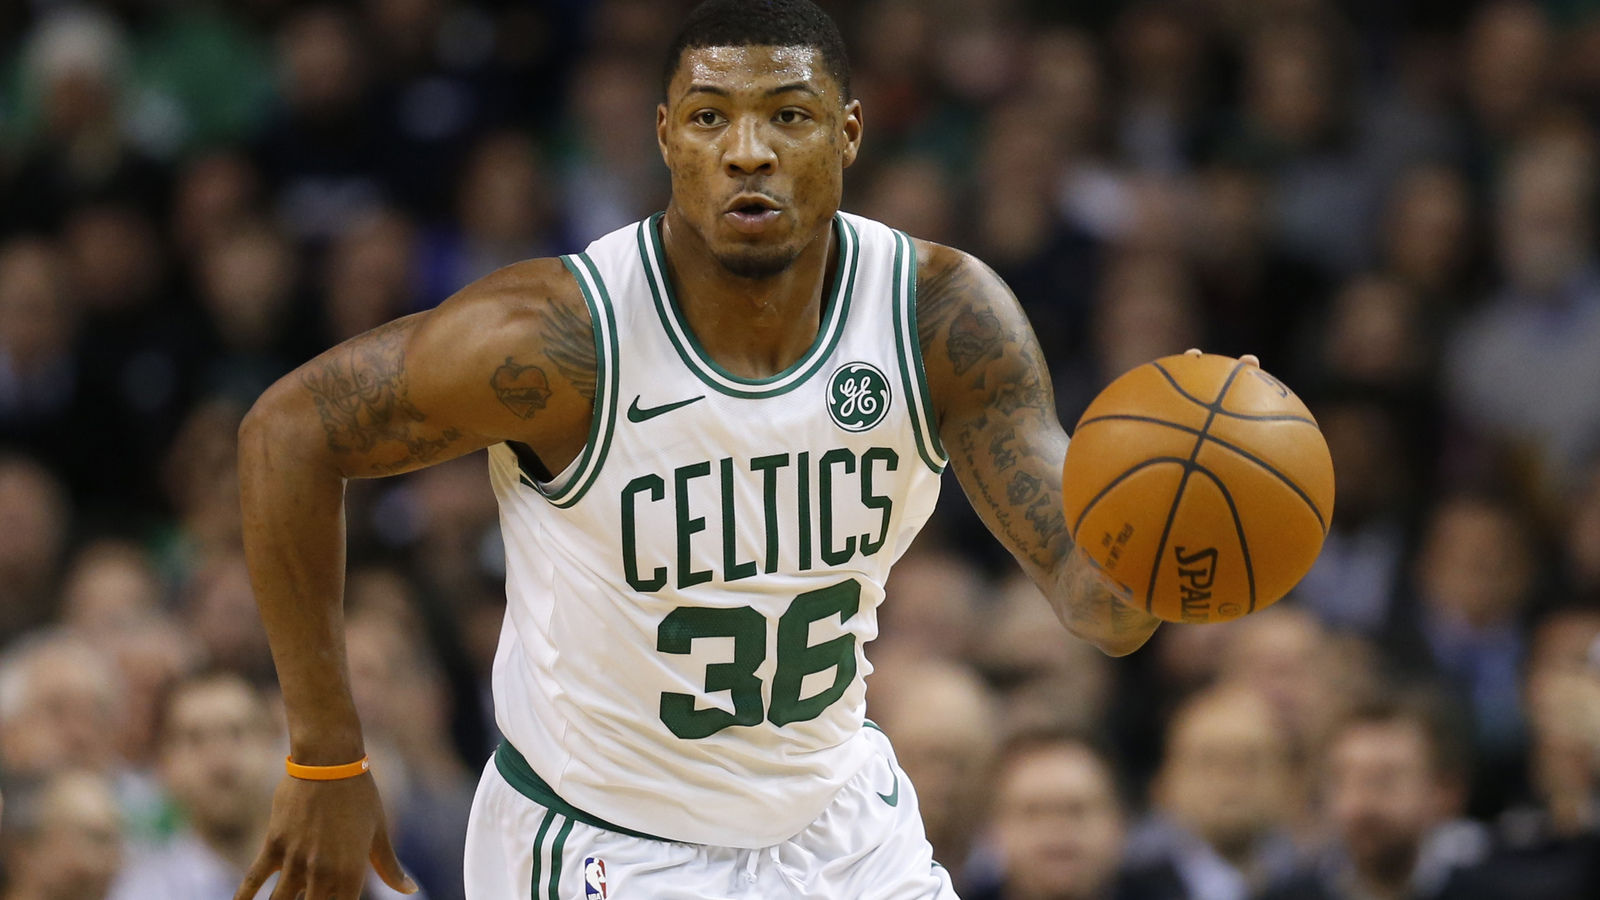 Celtics extend qualifying offer to Marcus Smart | Yardbarker.com